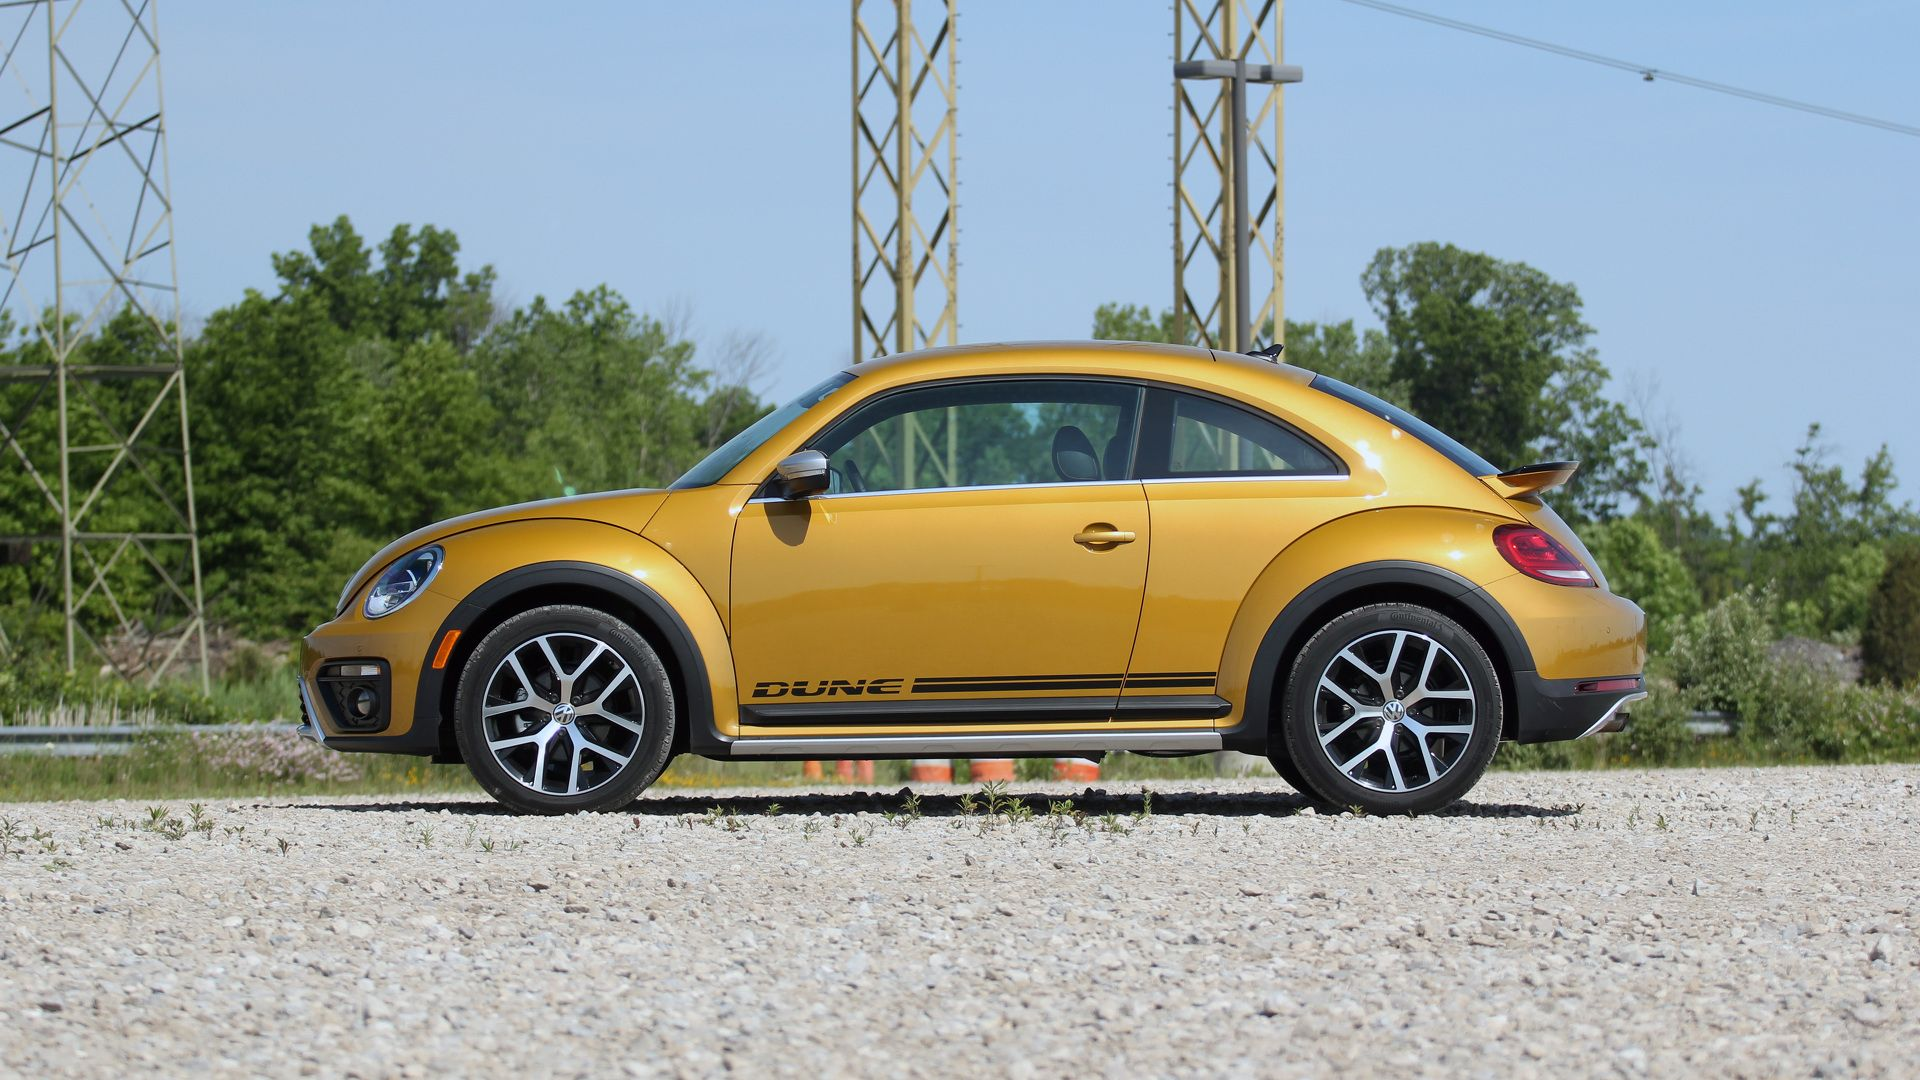 2020 Vw Beetle Dune Price and Review